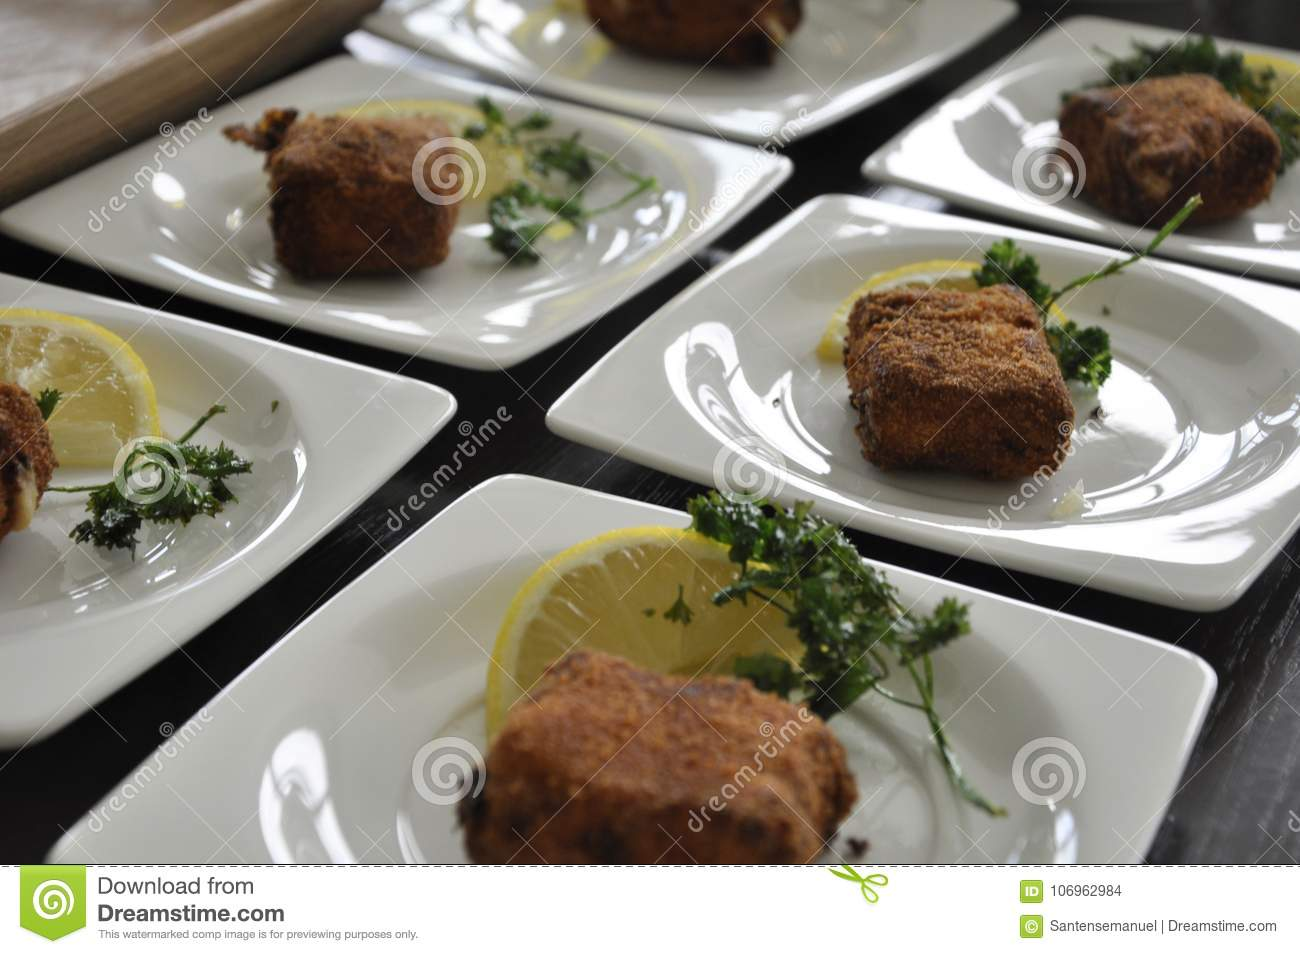 Krewetkowi croquettes